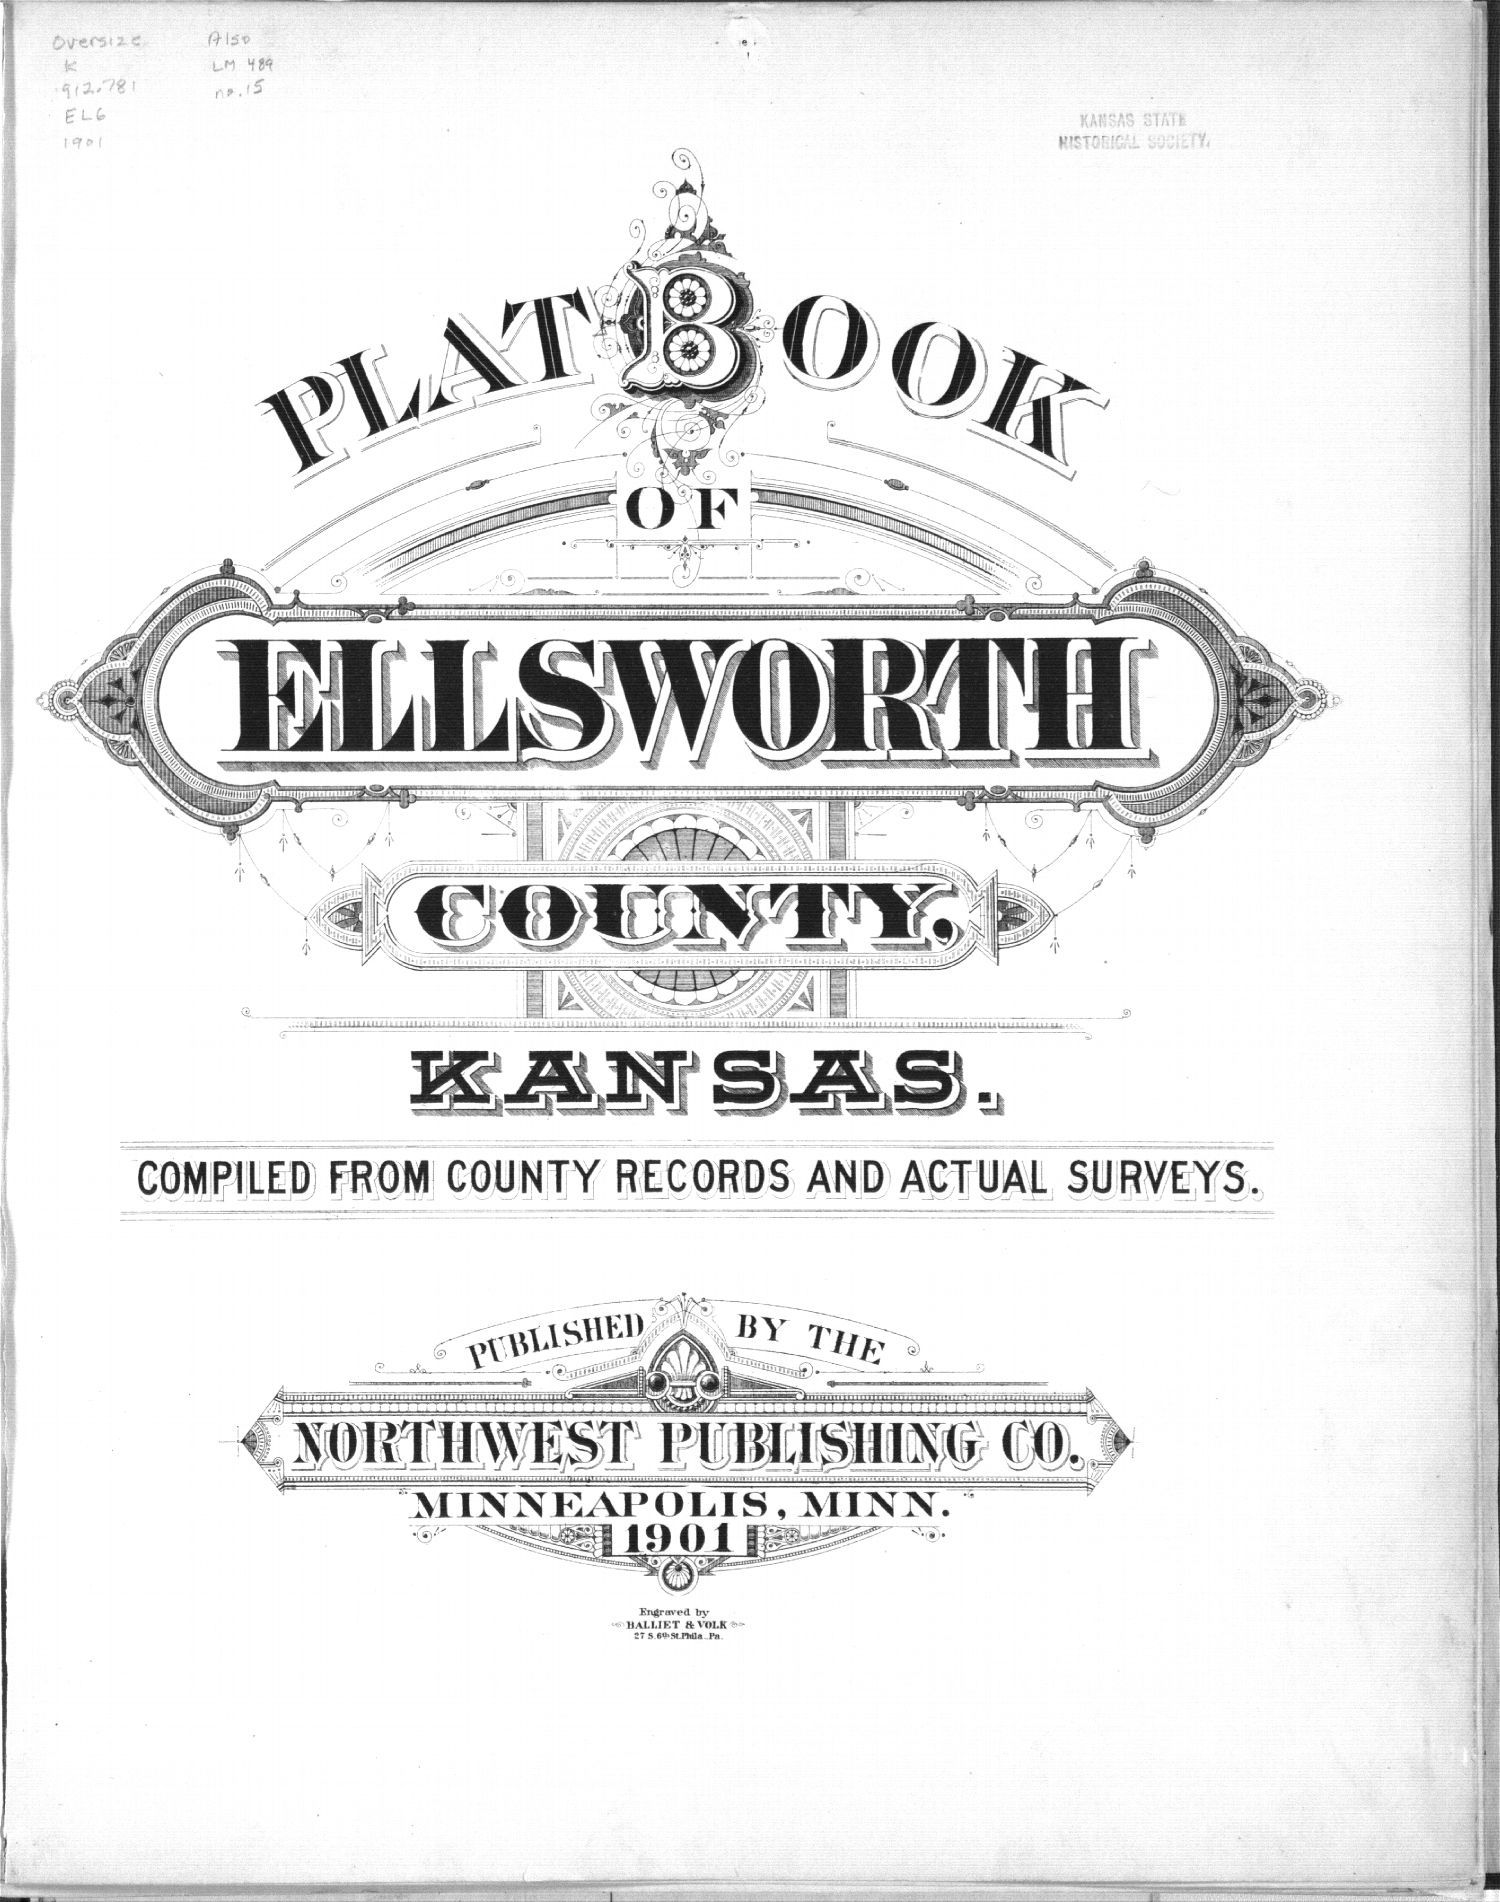 Plat book, Ellsworth County, Kansas - Title Page